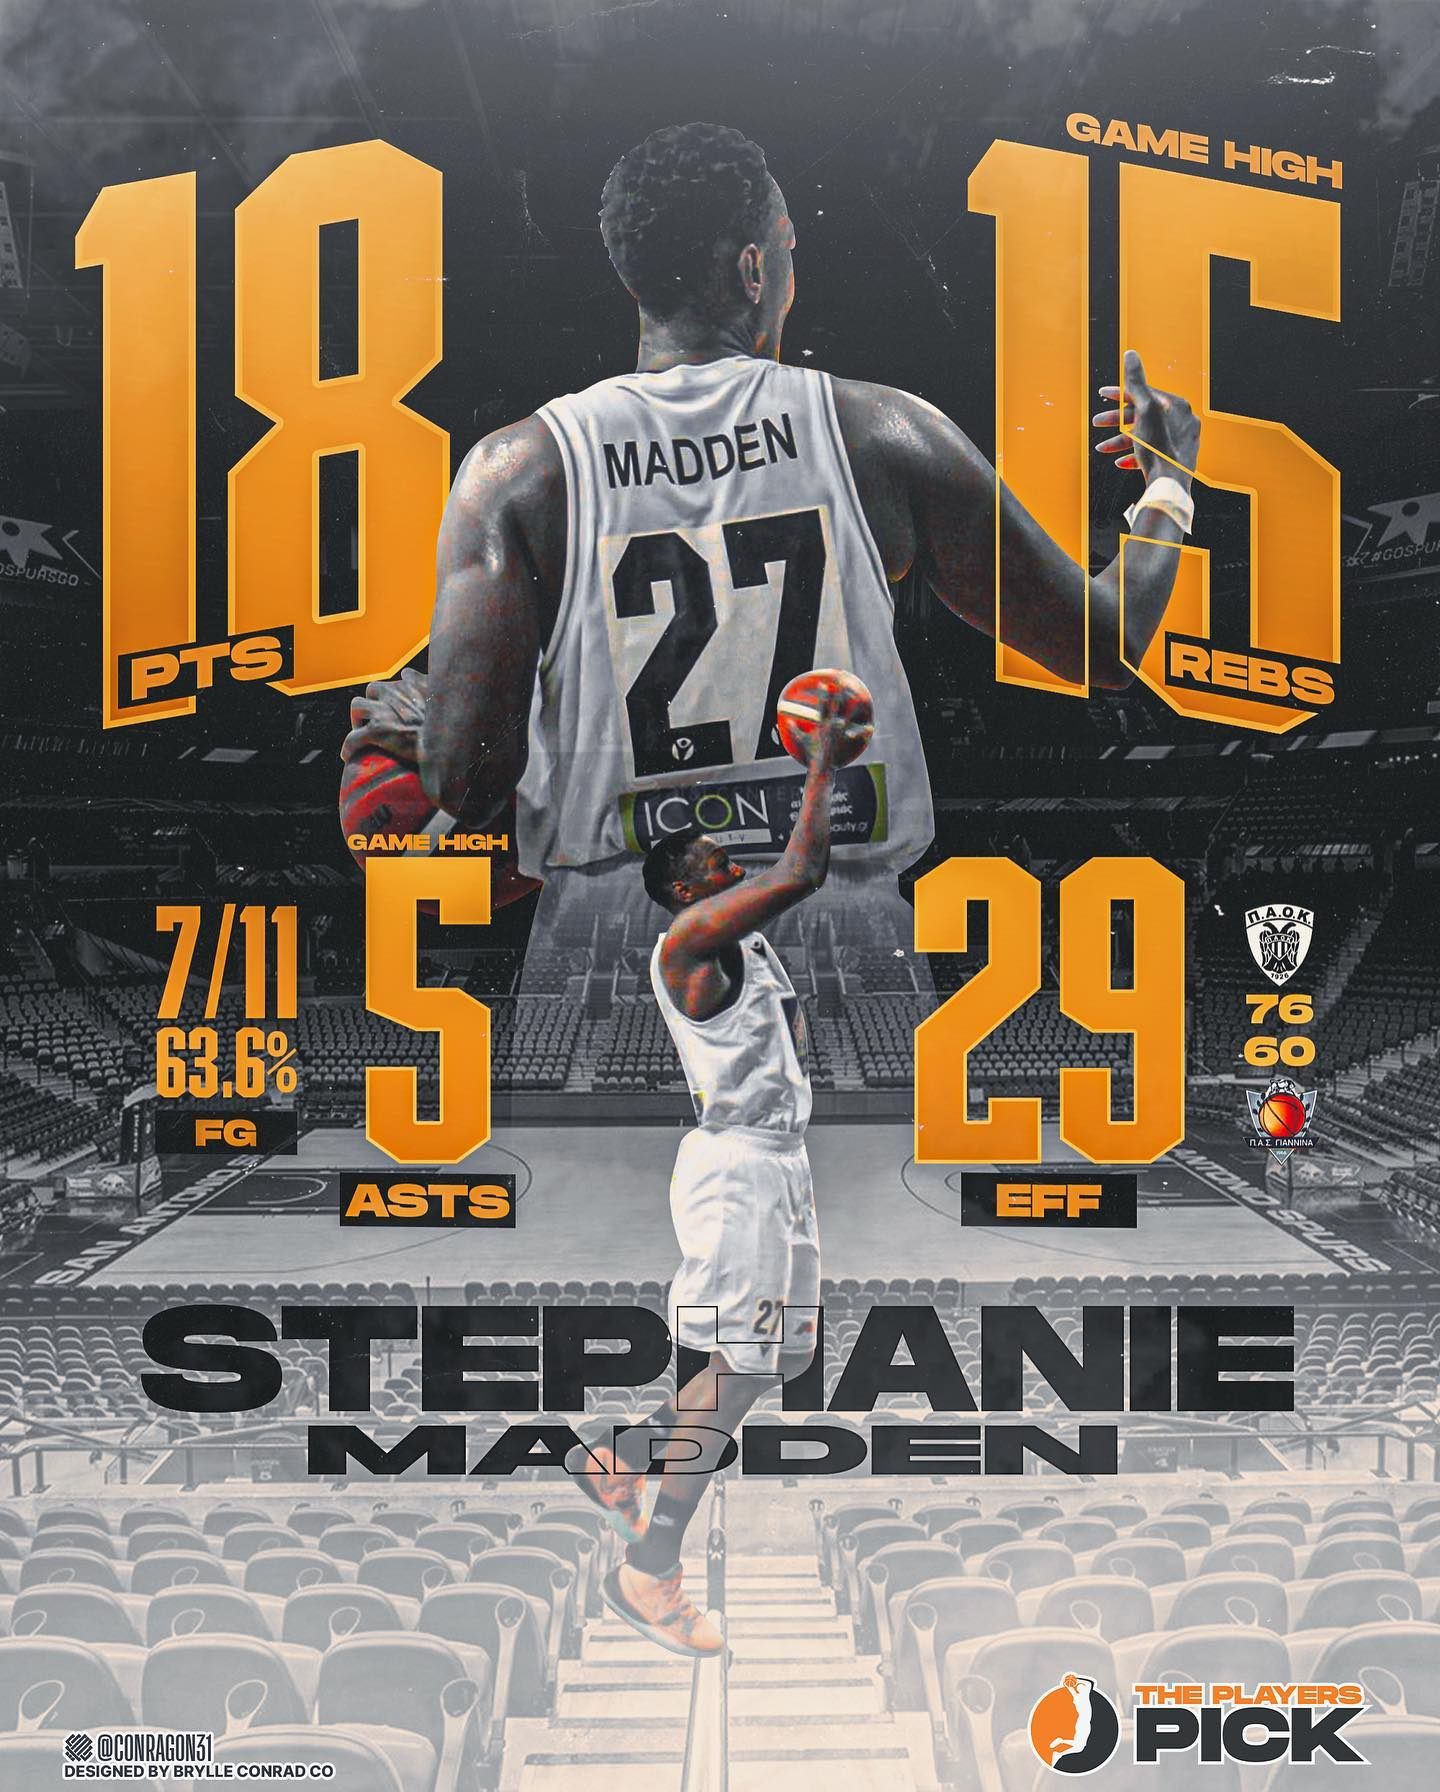 18 points & 15 rebounds for Stephanie Madden vs PAS!